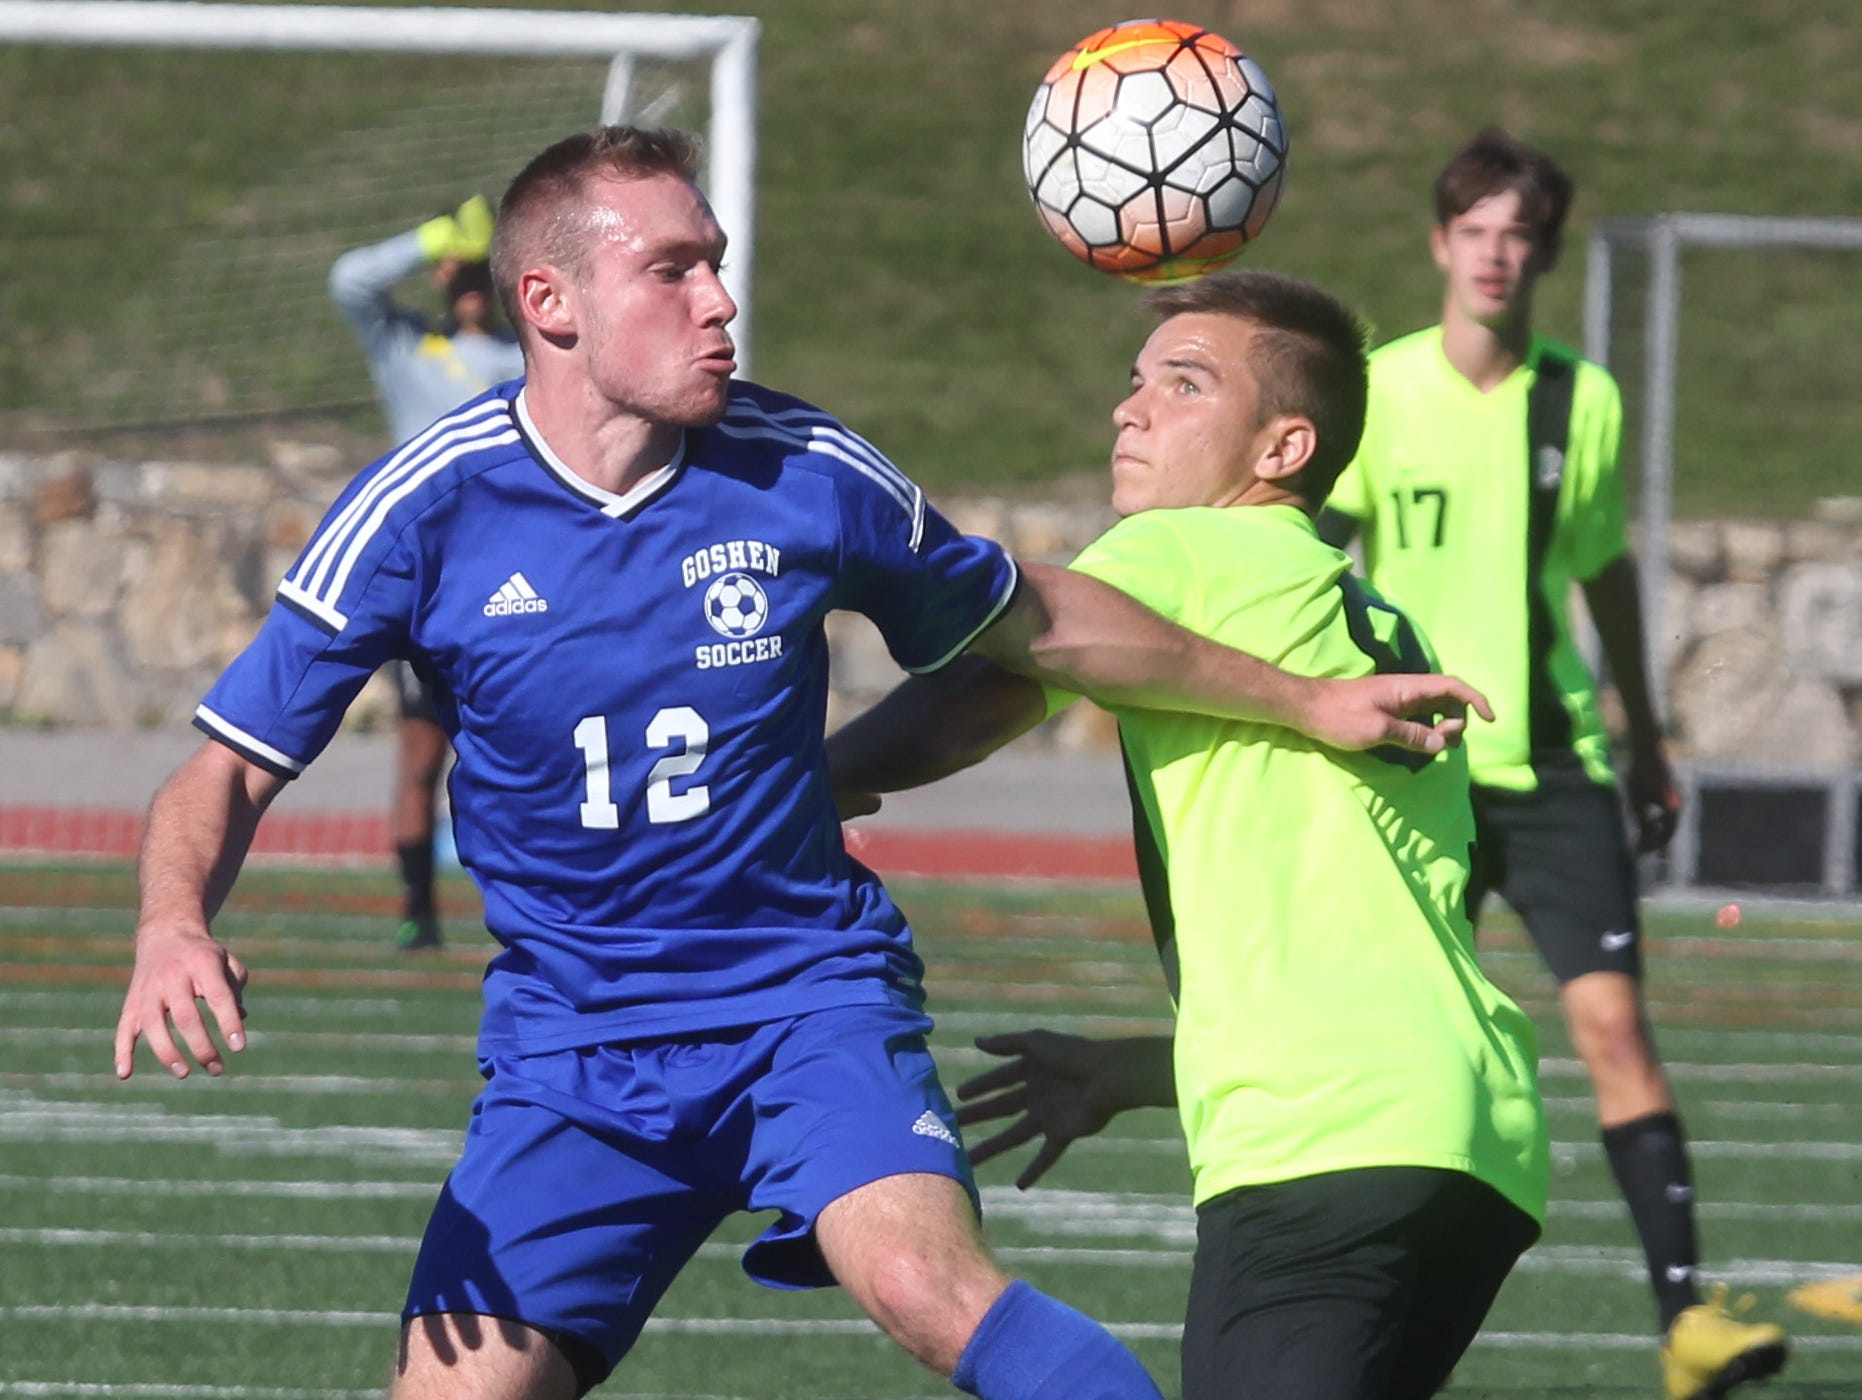 Goshen's Jakob Koppen, left, fights for the ball with Lakeland's Matias Prando during their Section 1 vs. Section 9 Challenge game at Valhalla Oct. 12, 2015. Goshen won 2-1 in overtime.